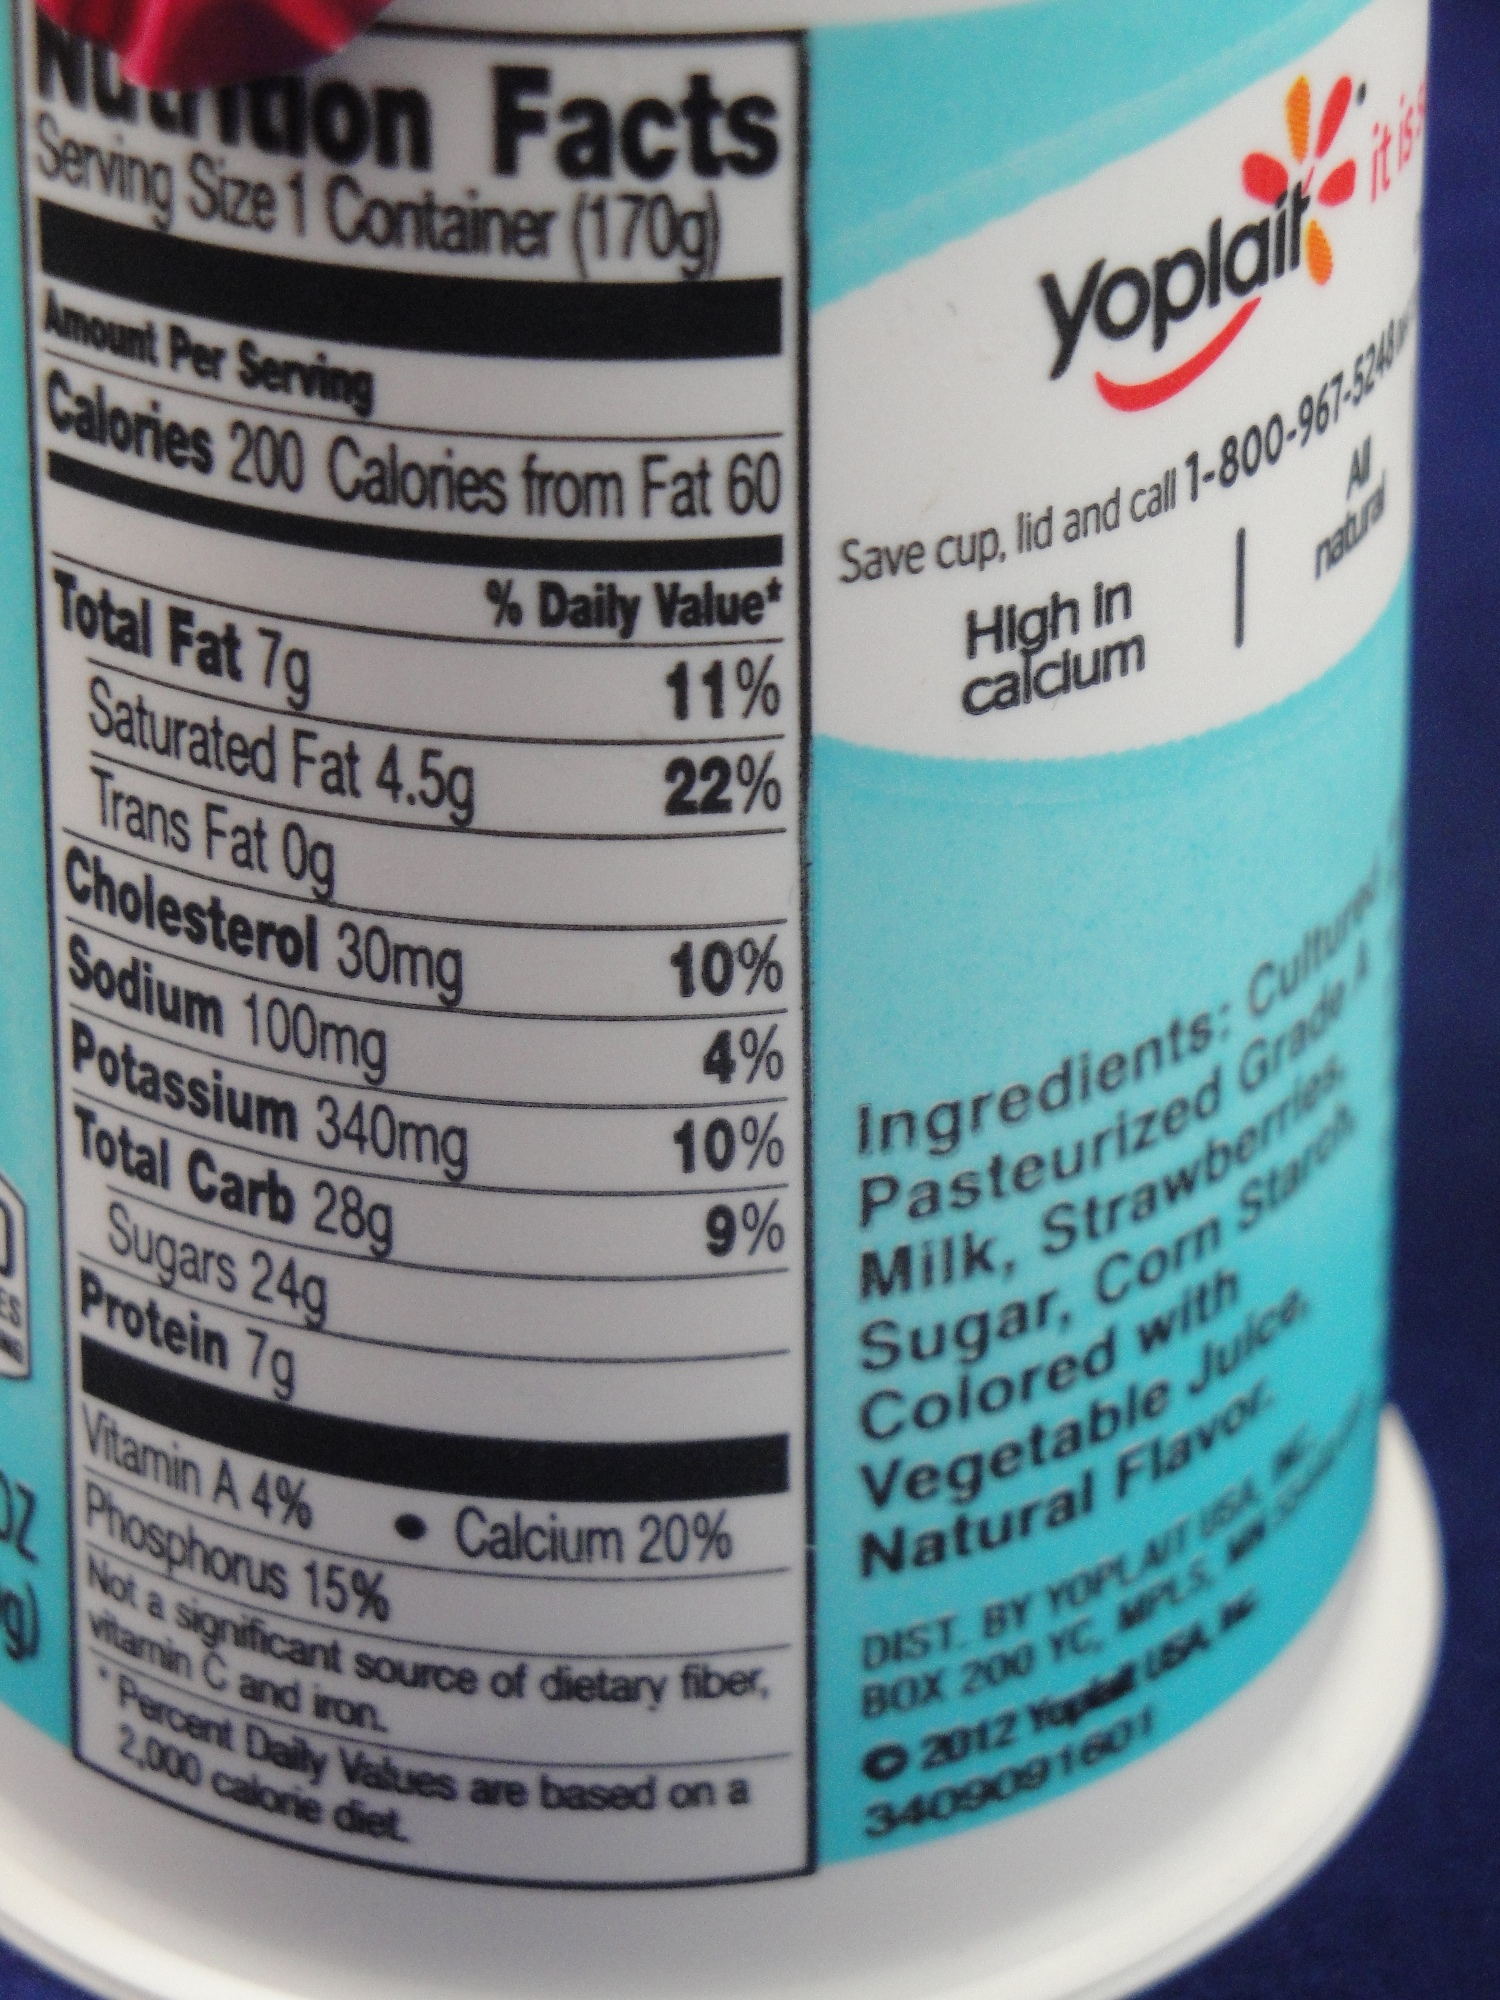 Yoplait Light Yogurt Nutrition Label Yoplait simplait yogurtYoplait Yogurt Nutrition Label